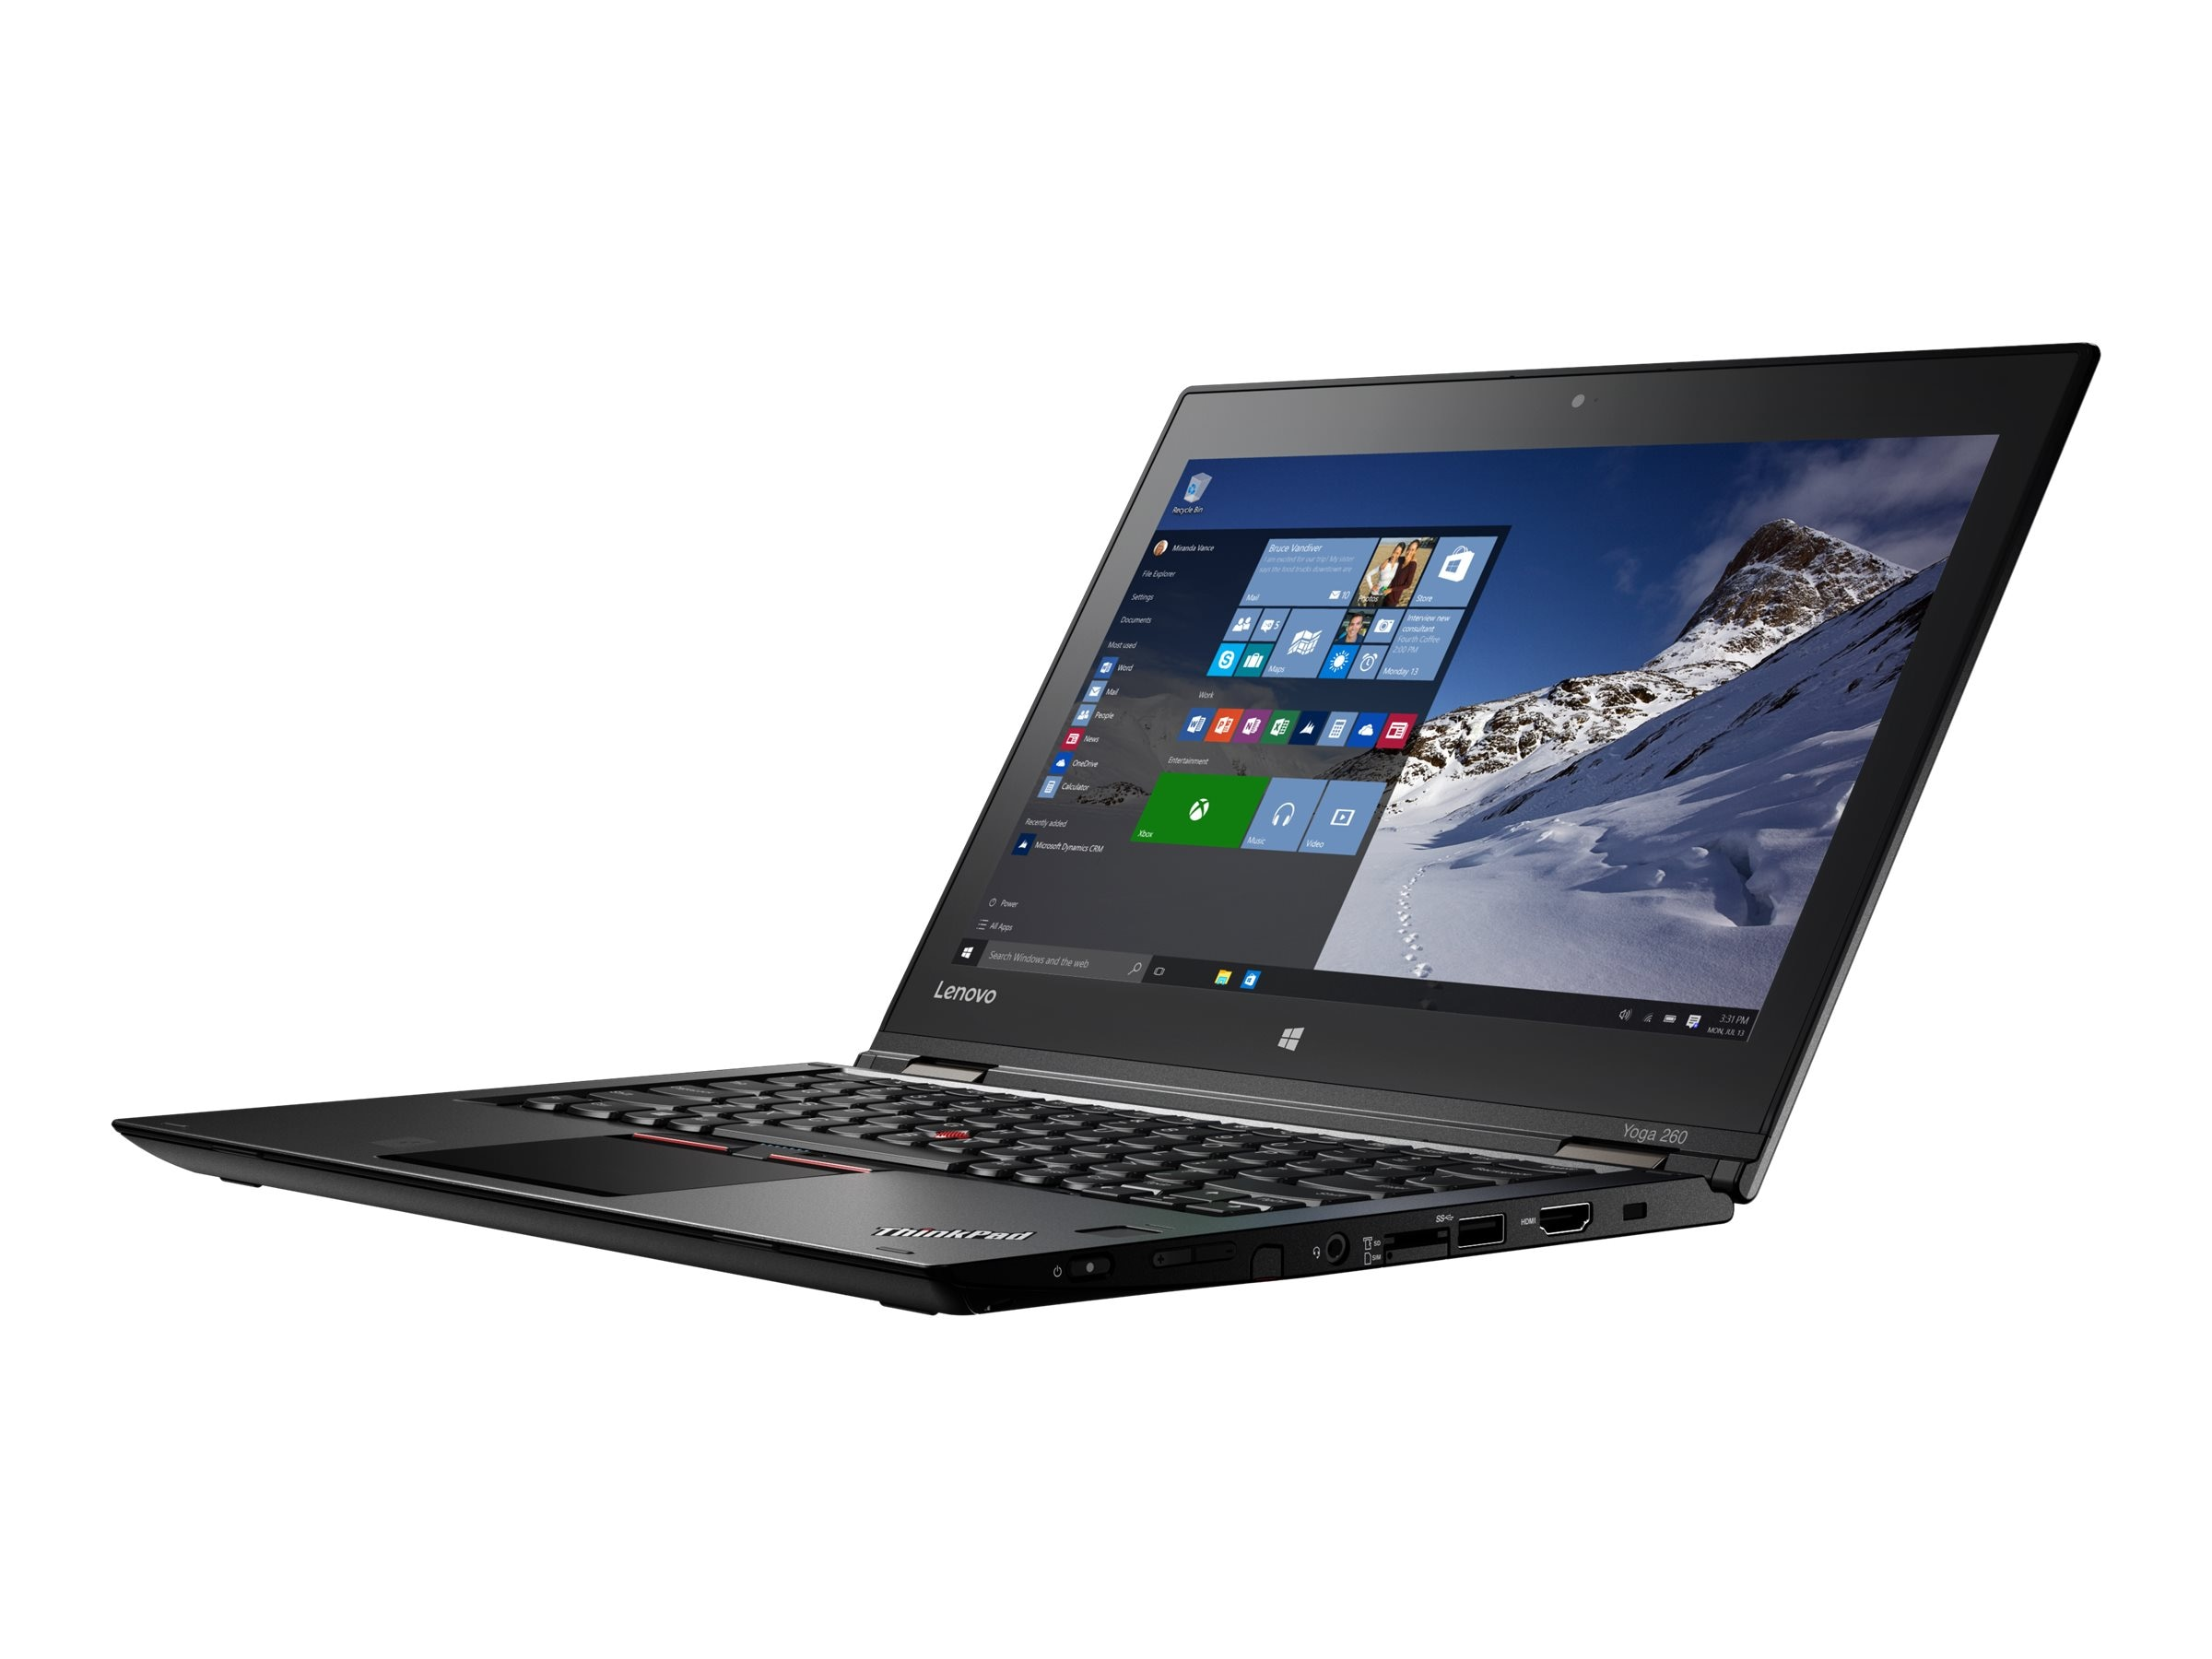 Lenovo TopSeller ThinkPad Yoga 260 Core i5-6200U 2.3GHz 8GB 192GB SSD ac BT FR WC 4C 12.5 HD MT W10P64, 20FD002DUS, 31221308, Notebooks - Convertible